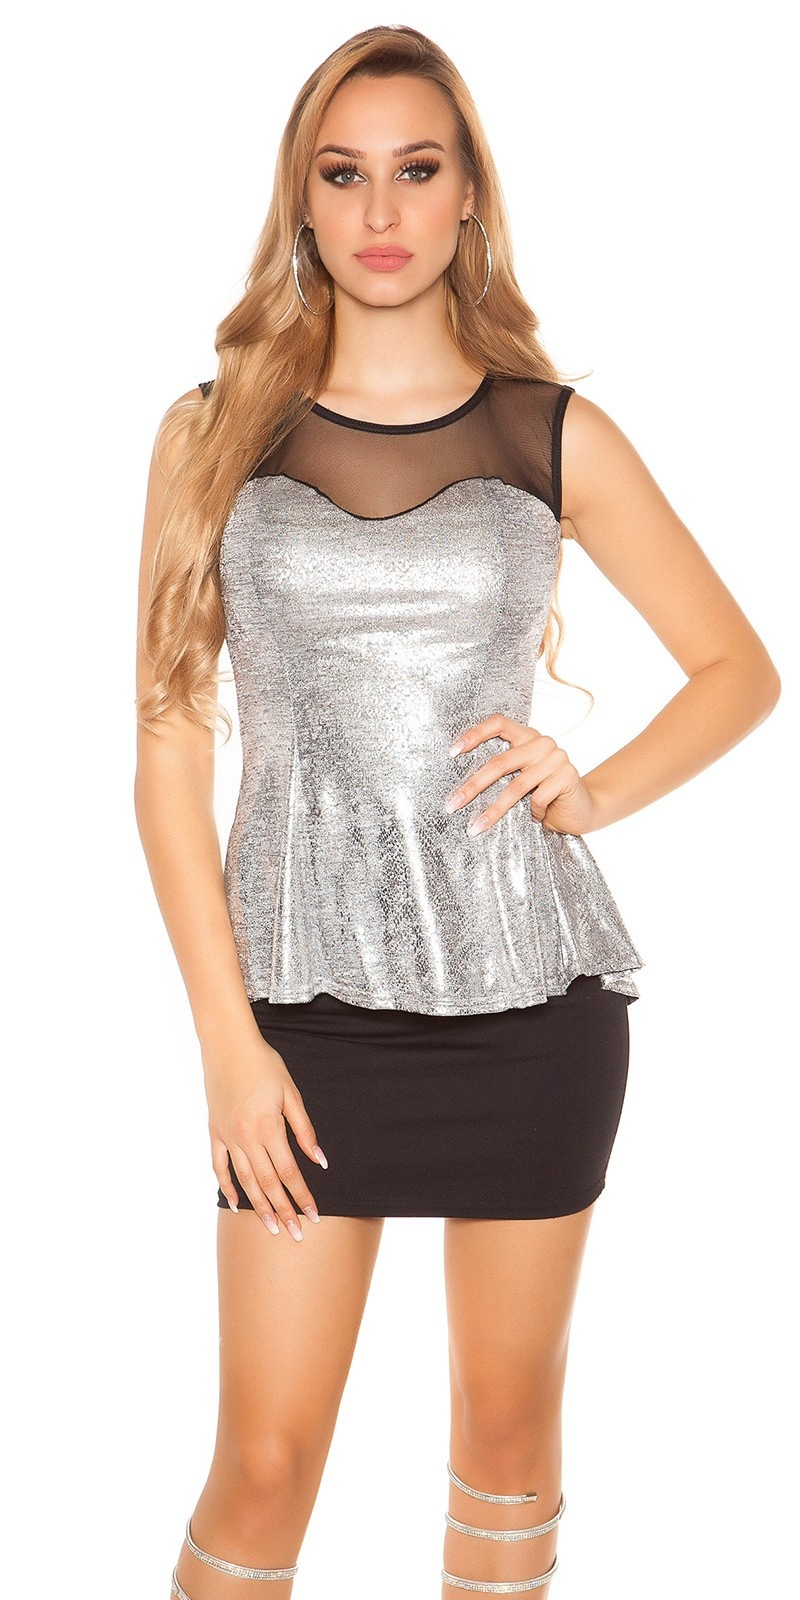 Trendy top with peplum and sexy insight Silver